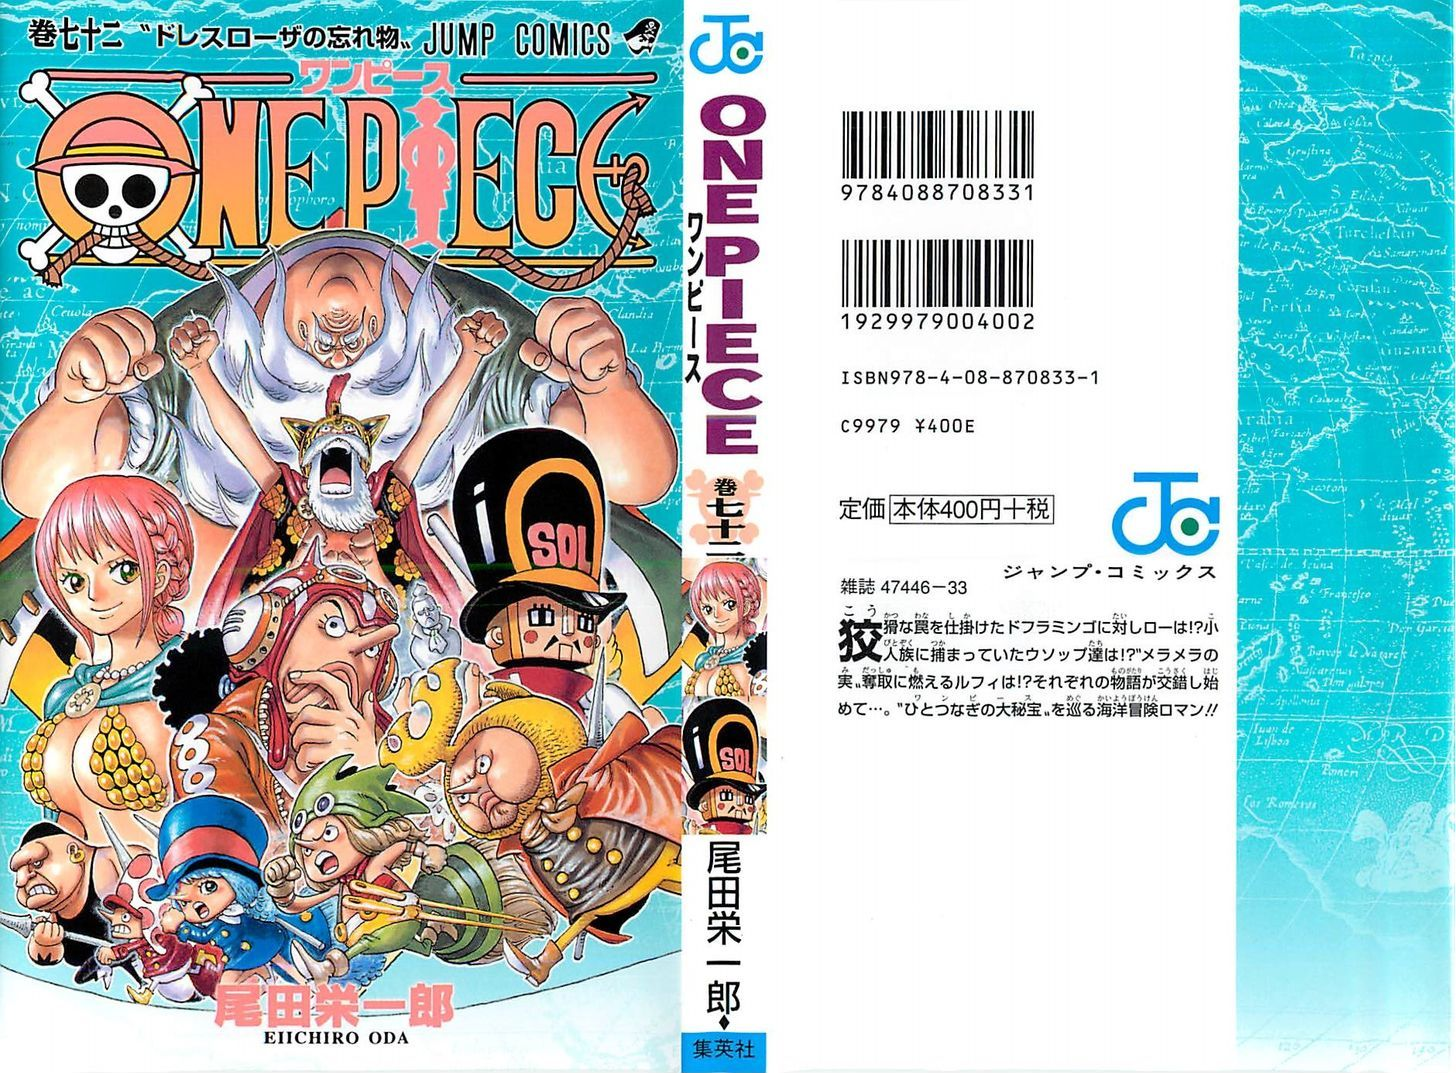 https://im.nineanime.com/comics/pic9/32/96/3061/OnePiece7120828.jpg Page 1